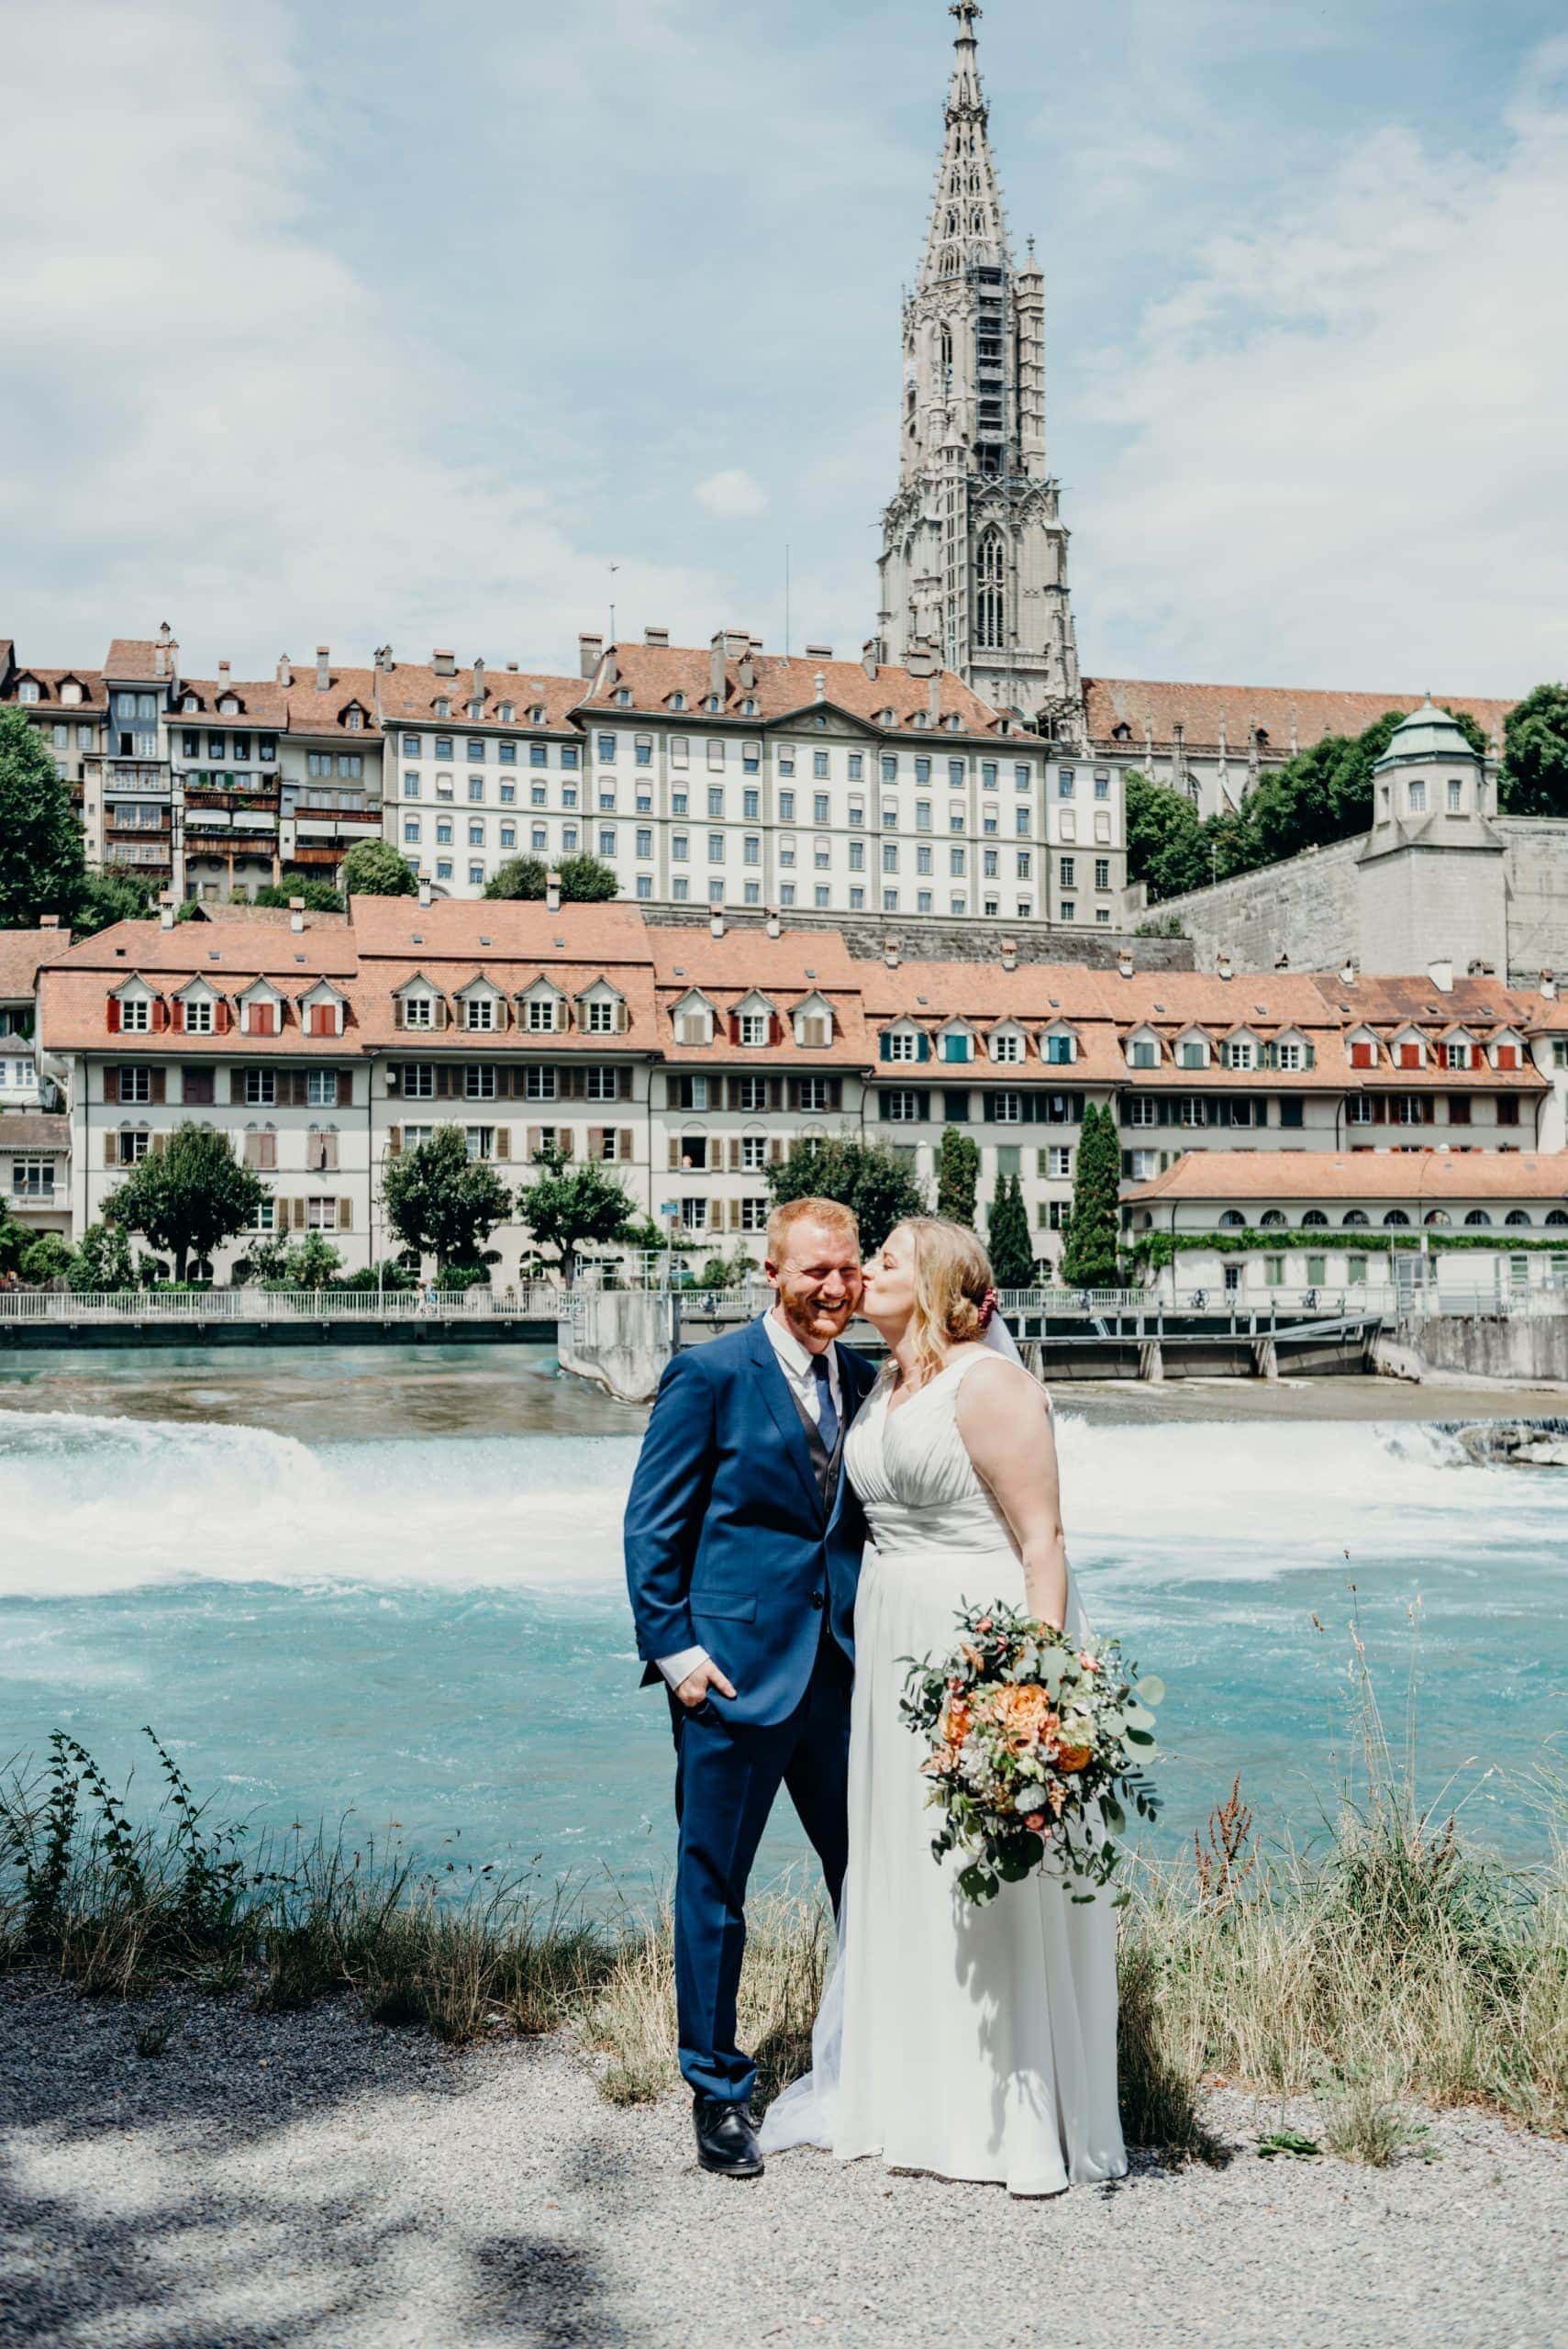 bride kissing groom's cheek in old town bern Switzerland for their Swiss wedding